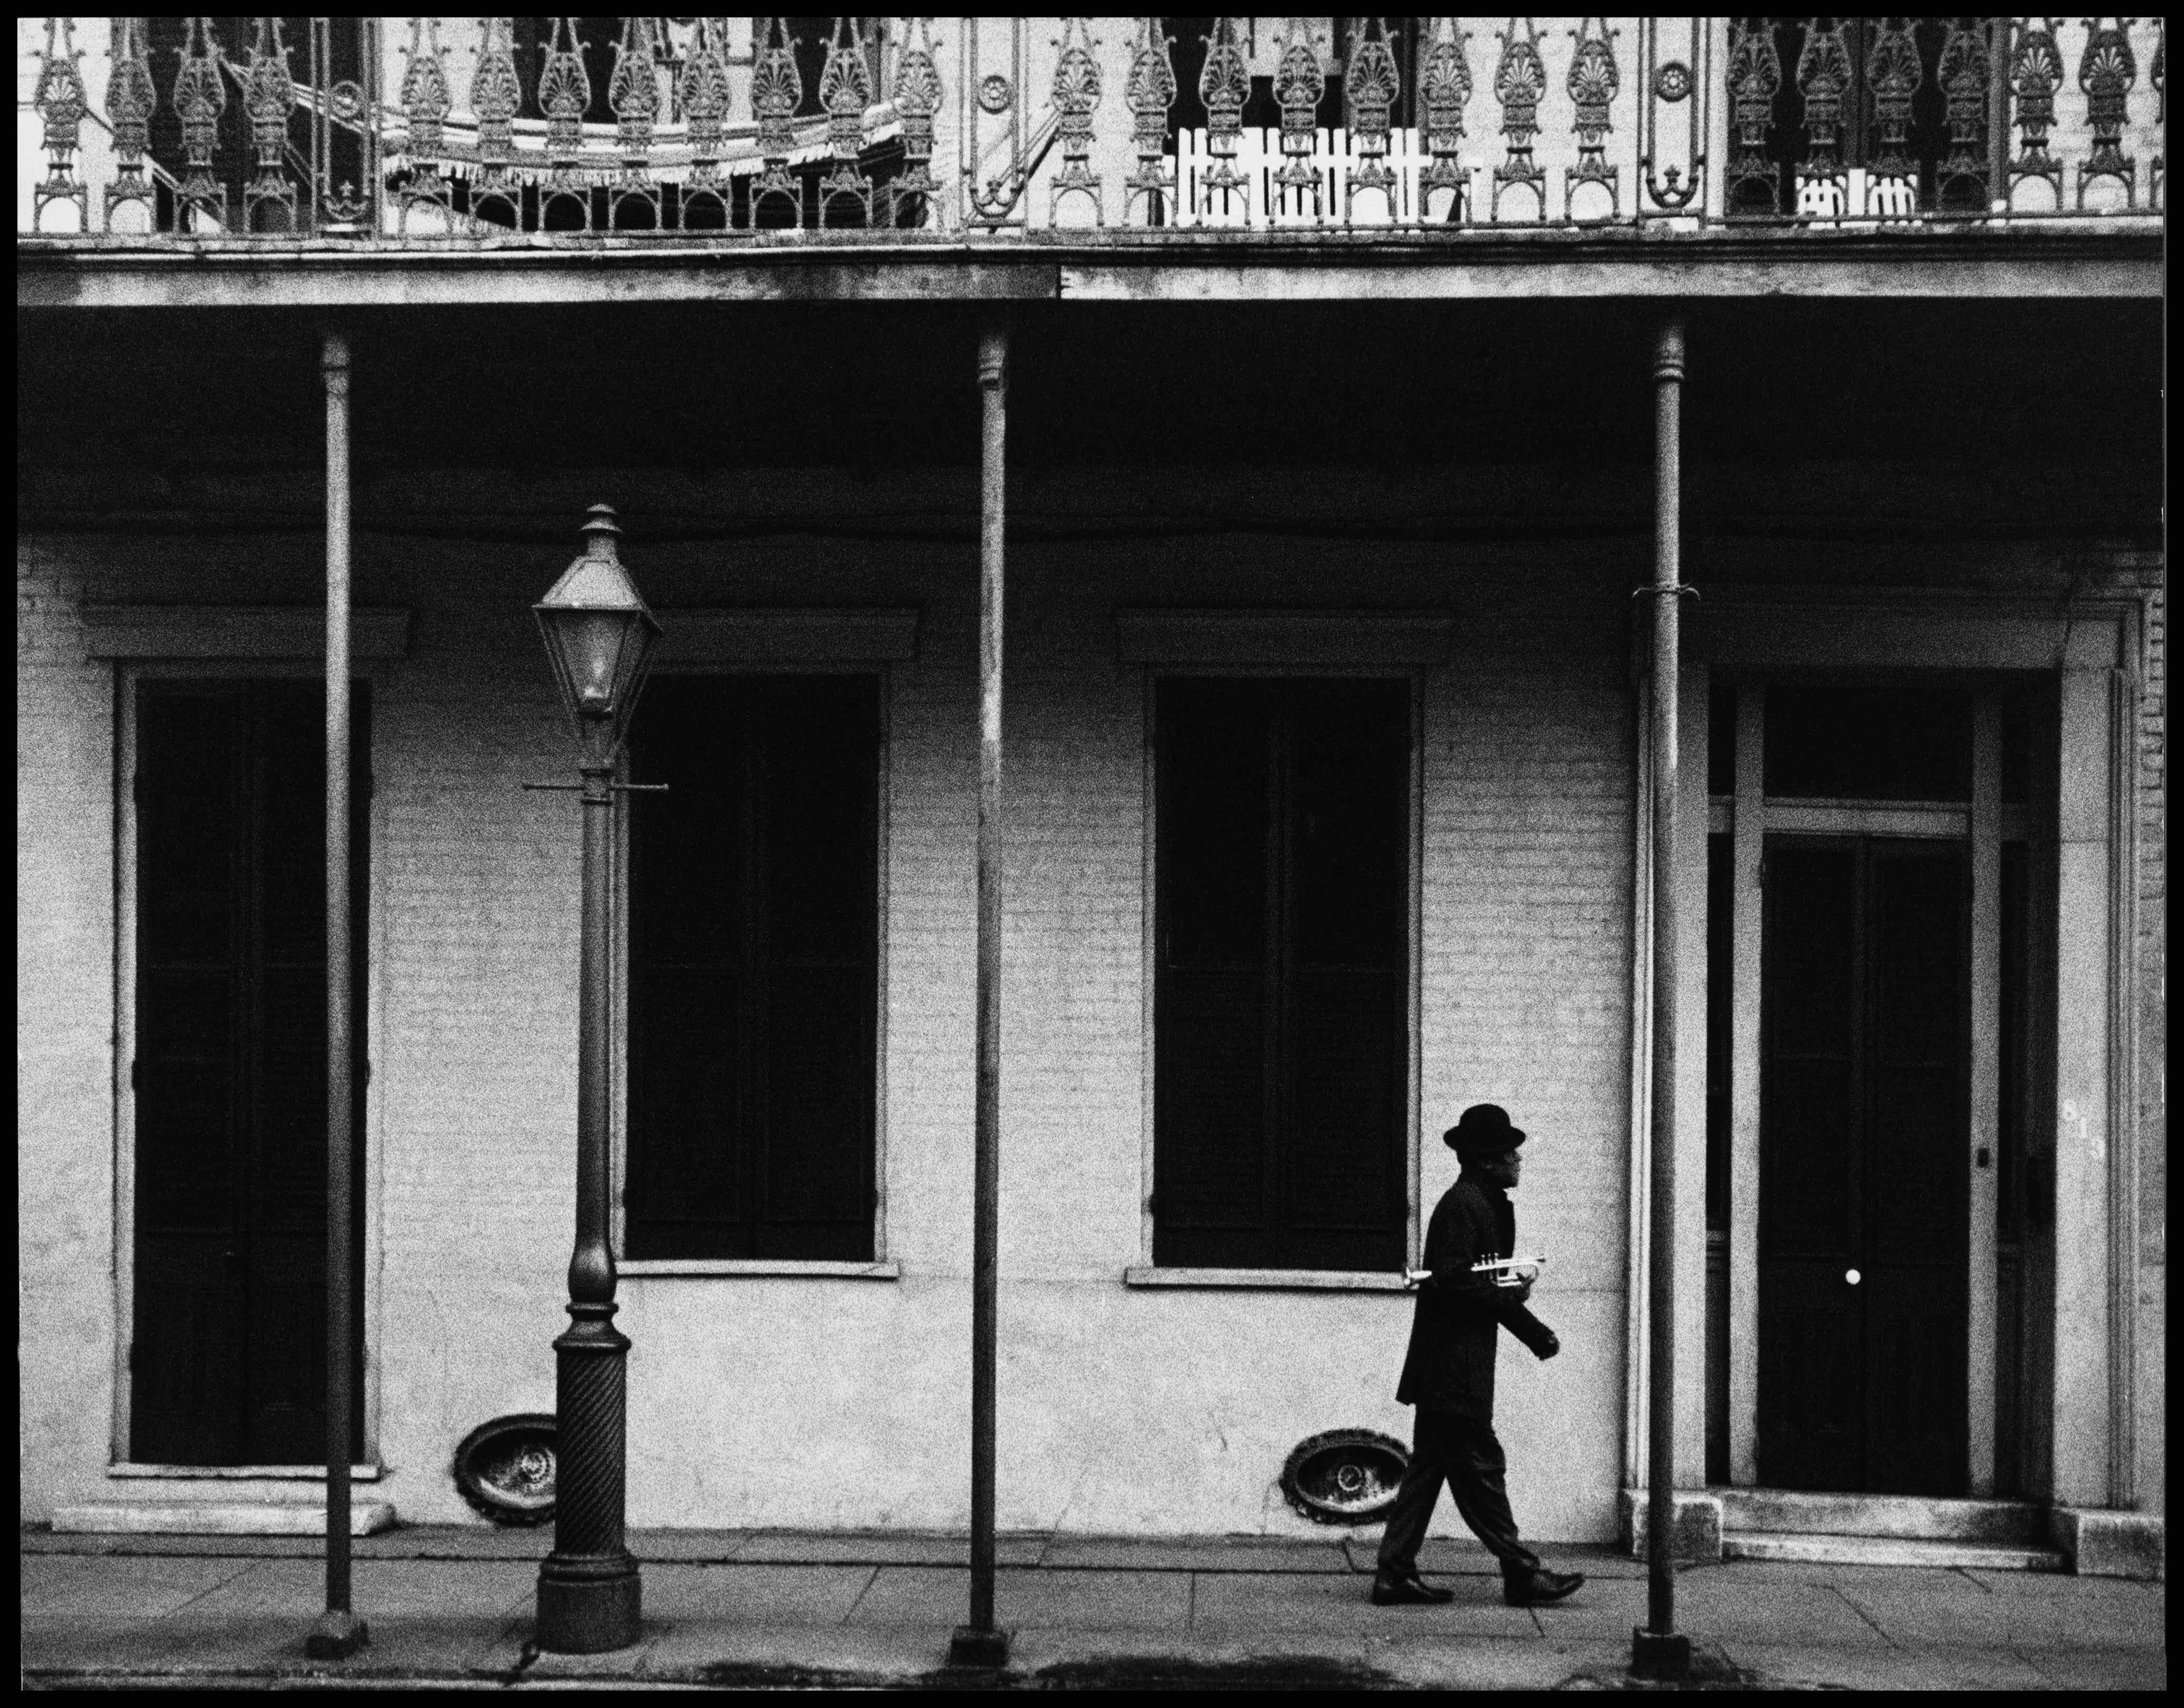 USA. New Orleans, Louisiana. 1958. Ernest MILLER nicknamed Kid Punch MILLER trumpet player and singer returning home at 6 am. © Dennis Stock / Magnum Photos